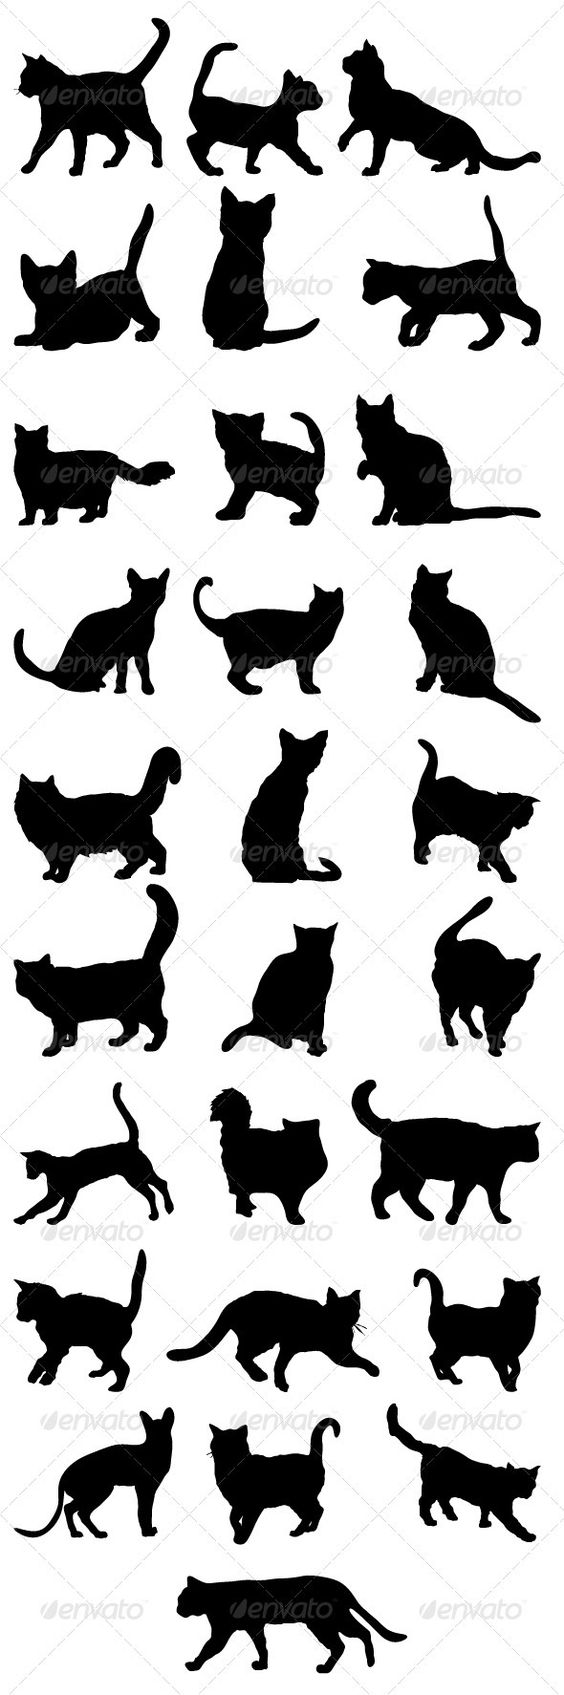 Download Cats Silhouettes Big Pack 2 | Black cat tattoos, Cat ...